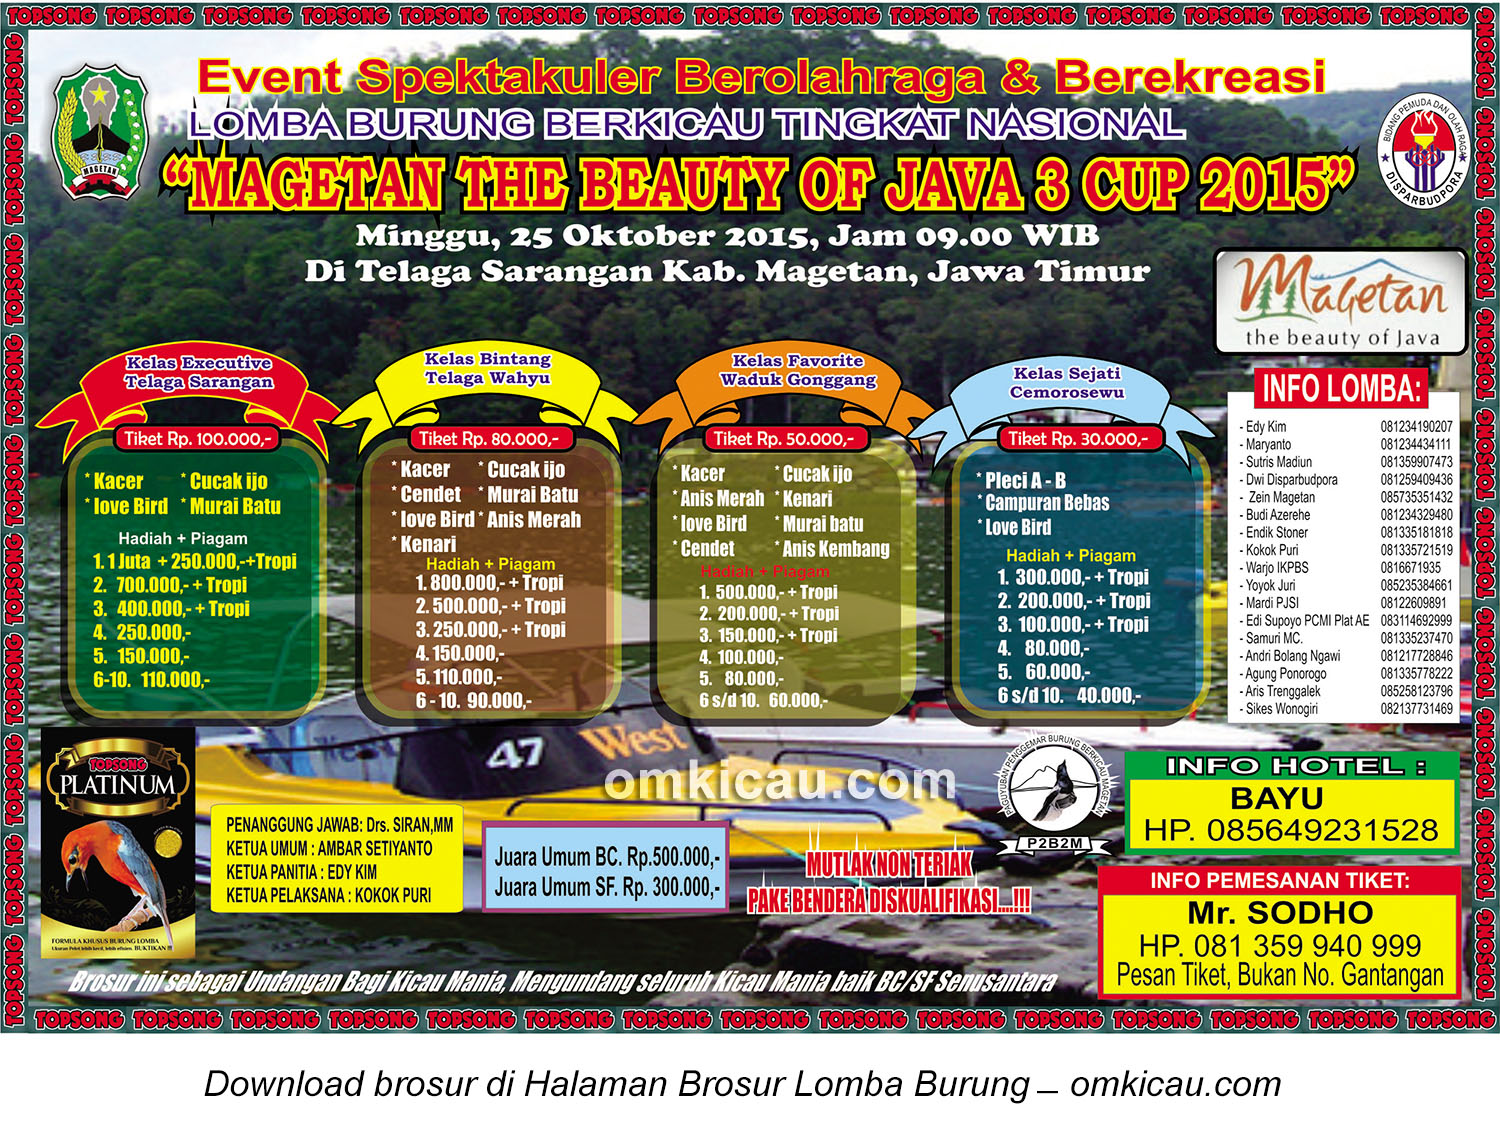 Brosur Lomba Burung Berkicau Magetan the Beauty of Java 3 Cup, 25 Oktober 2015